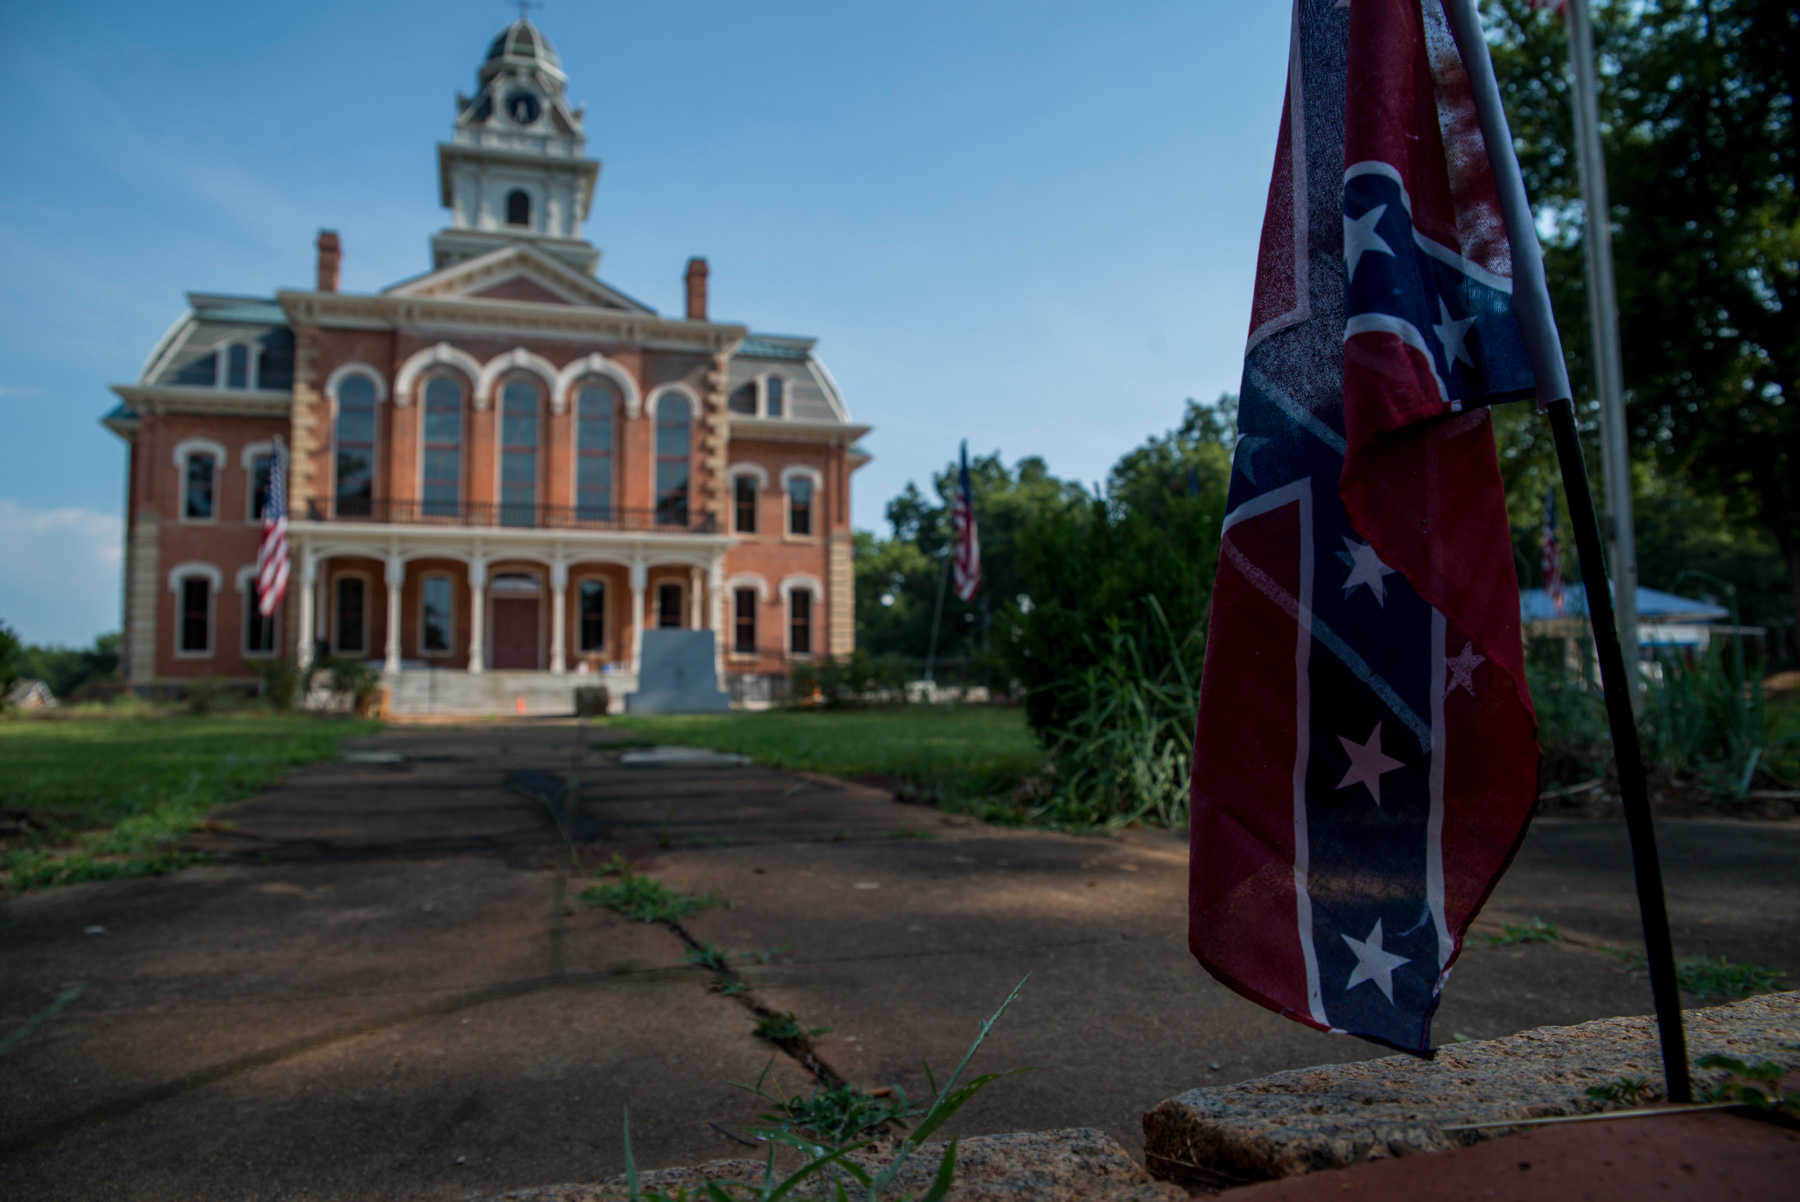 The Hancock County courthouse is in the county seat of Sparta, Georgia. Across from the courthouse a Confederate flag is wedged into the bricks of the Civil War memorial dedicated to those who served in the Confederacy. Sparta's population is nearly 80 percent black. (Roman Knertser/News21)